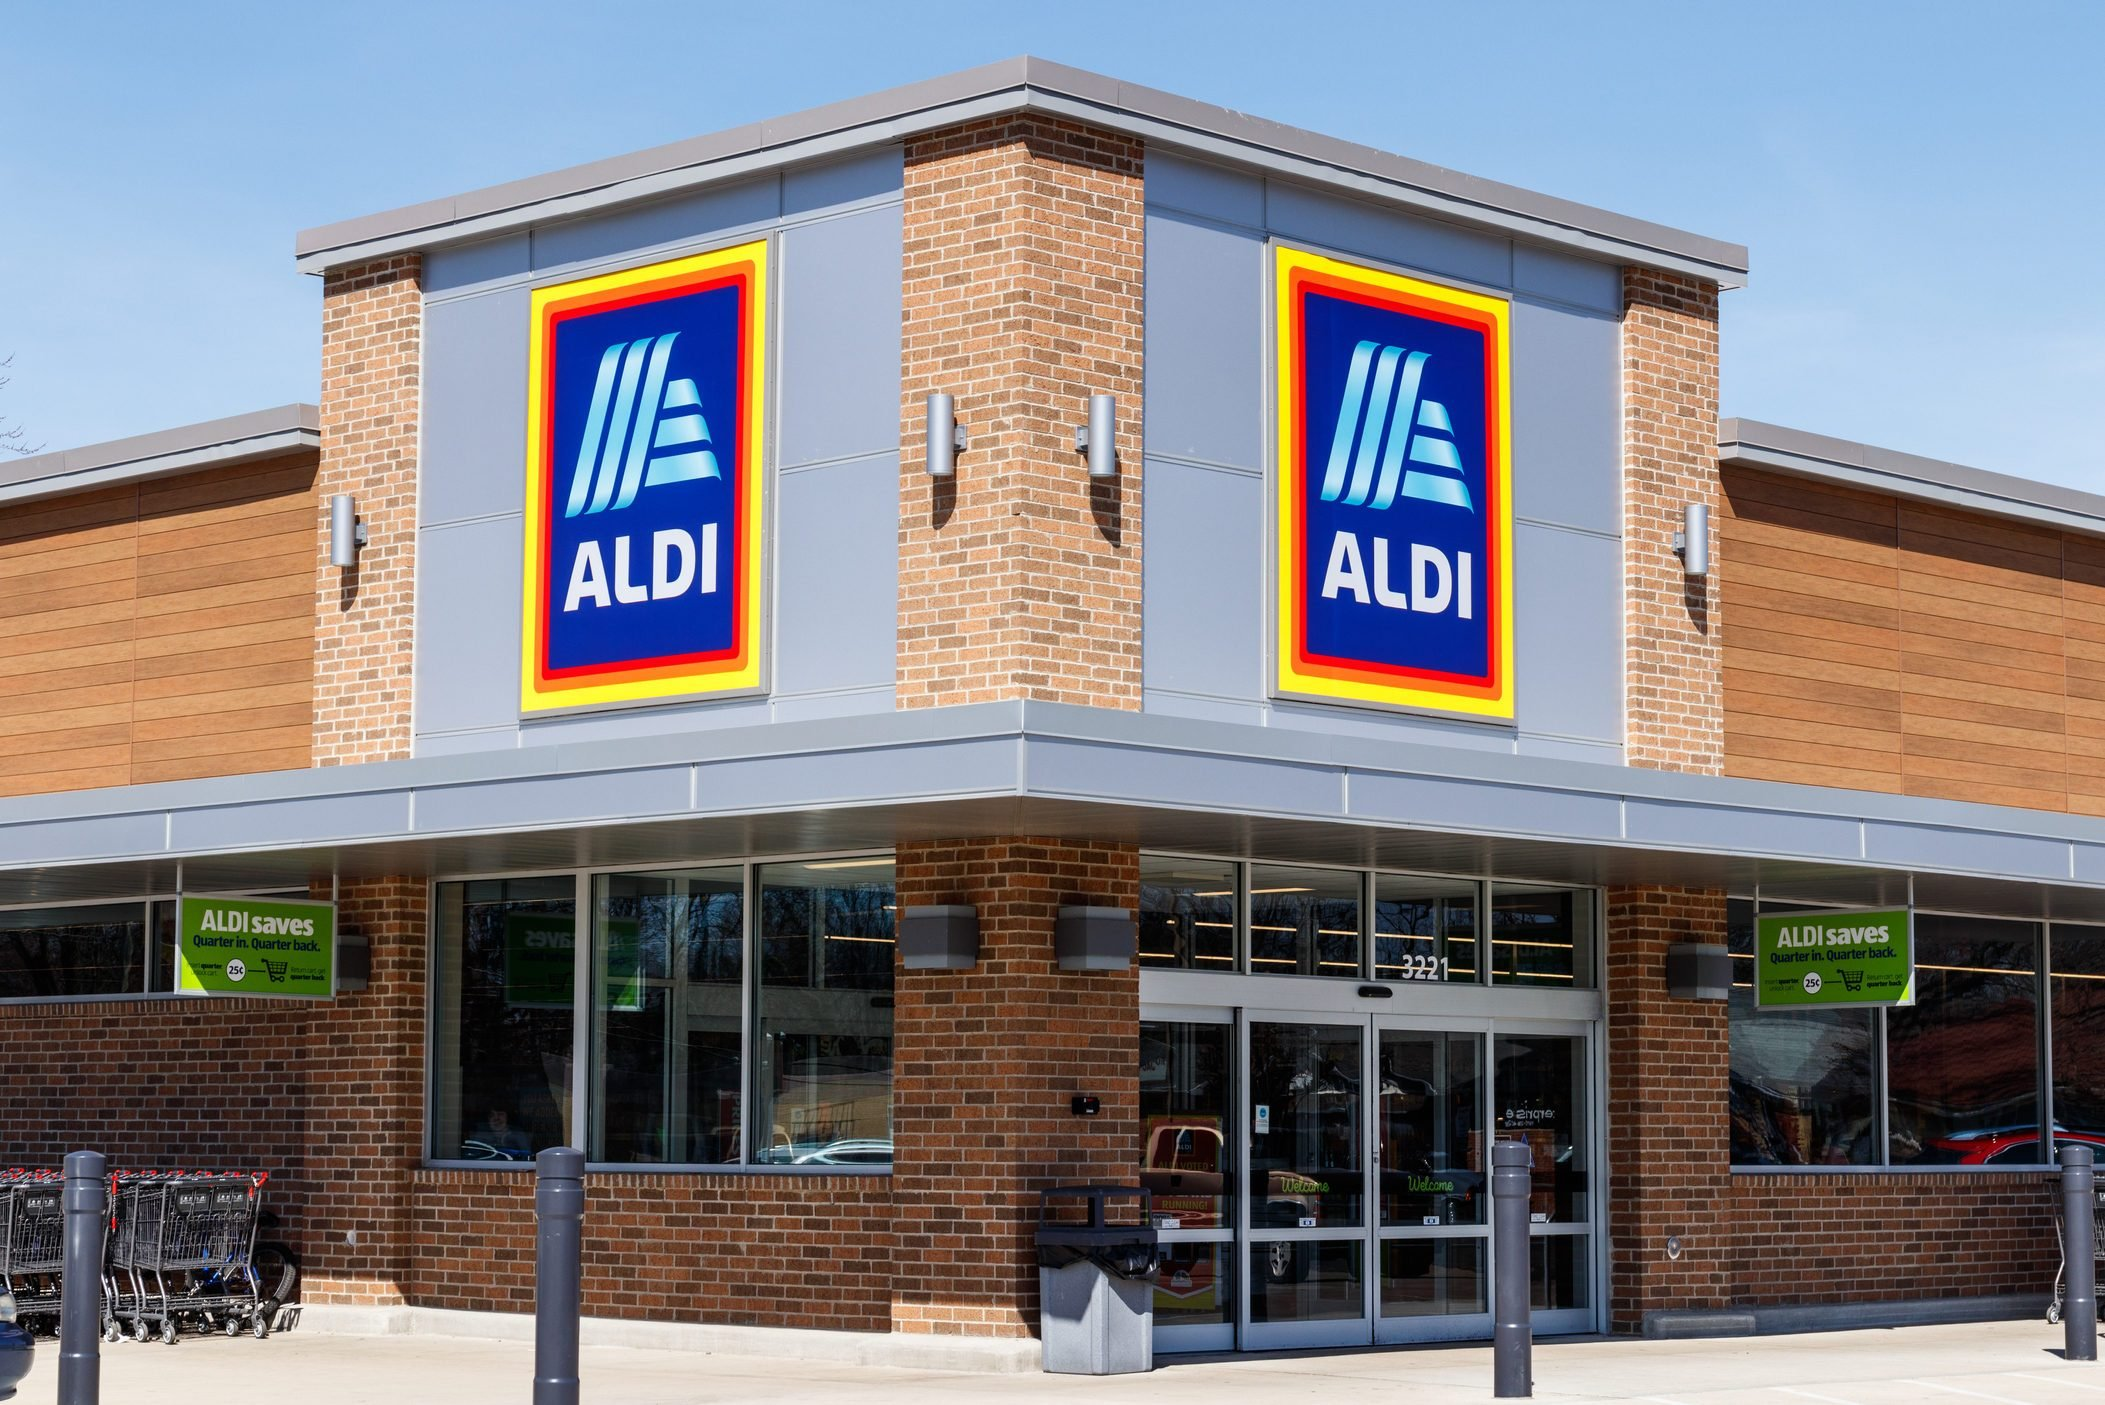 Aldi Discount Supermarket. Aldi sells a range of grocery items, including produce, meat & dairy, at discount prices II